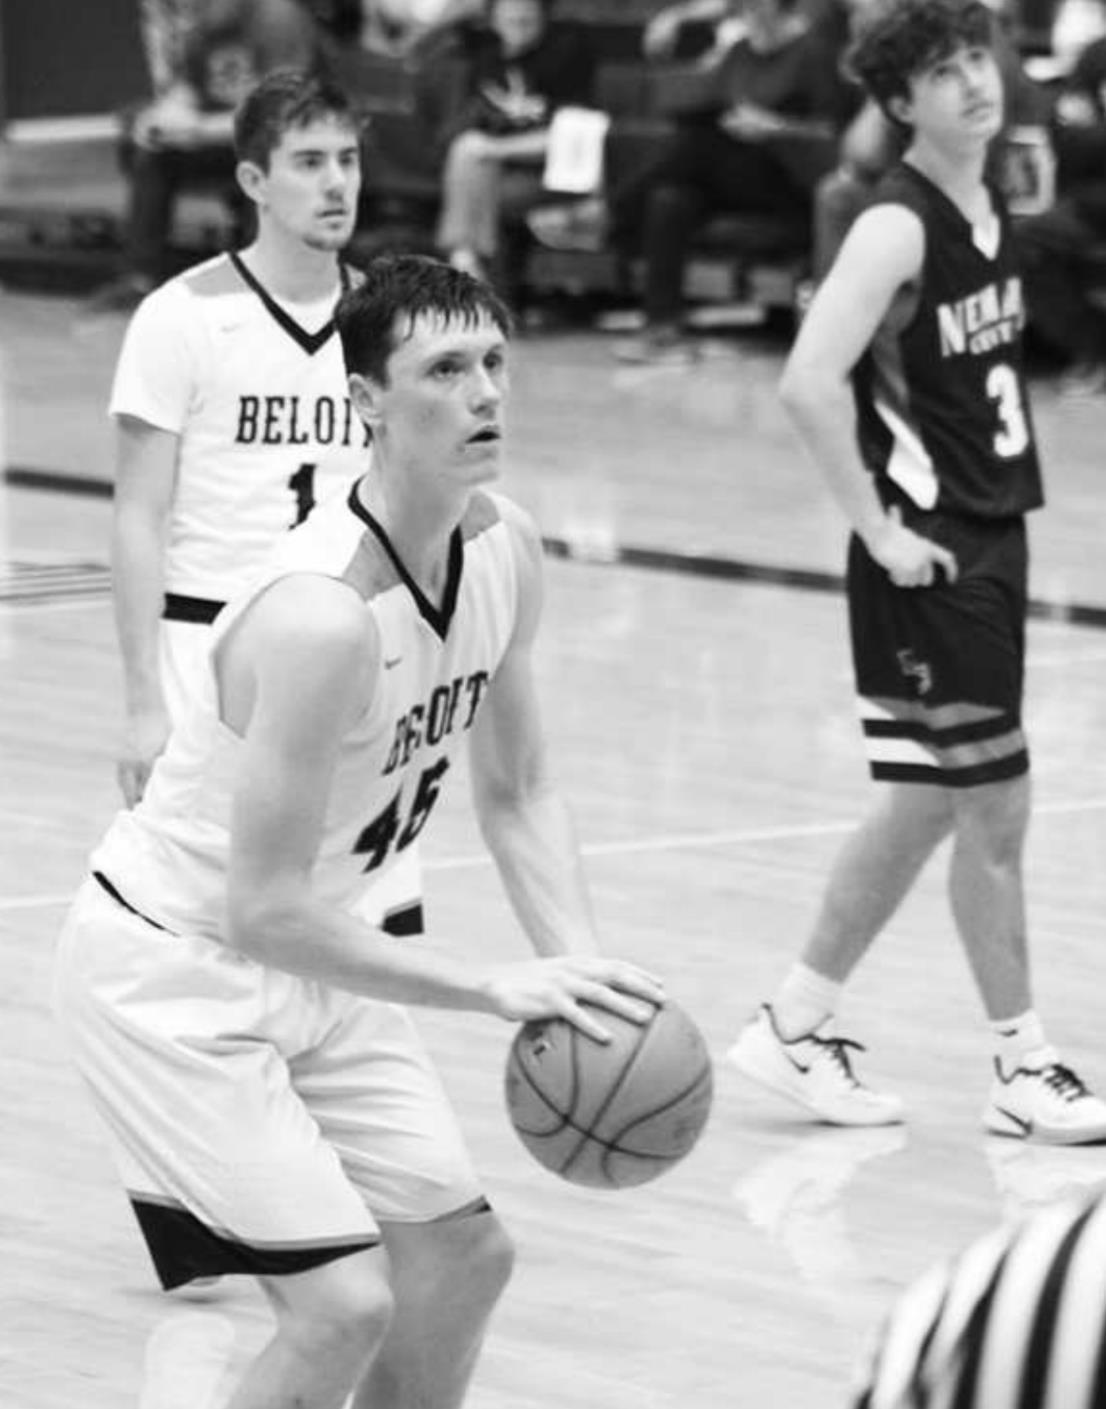 Beloit senior Bryce Mason makes his free shots for the Trojans during the first round of 3A State Championship competition in Hutchinson on Wednesday. Senior Vincent Palen is ready on the play. Trojan Times courtesy photo